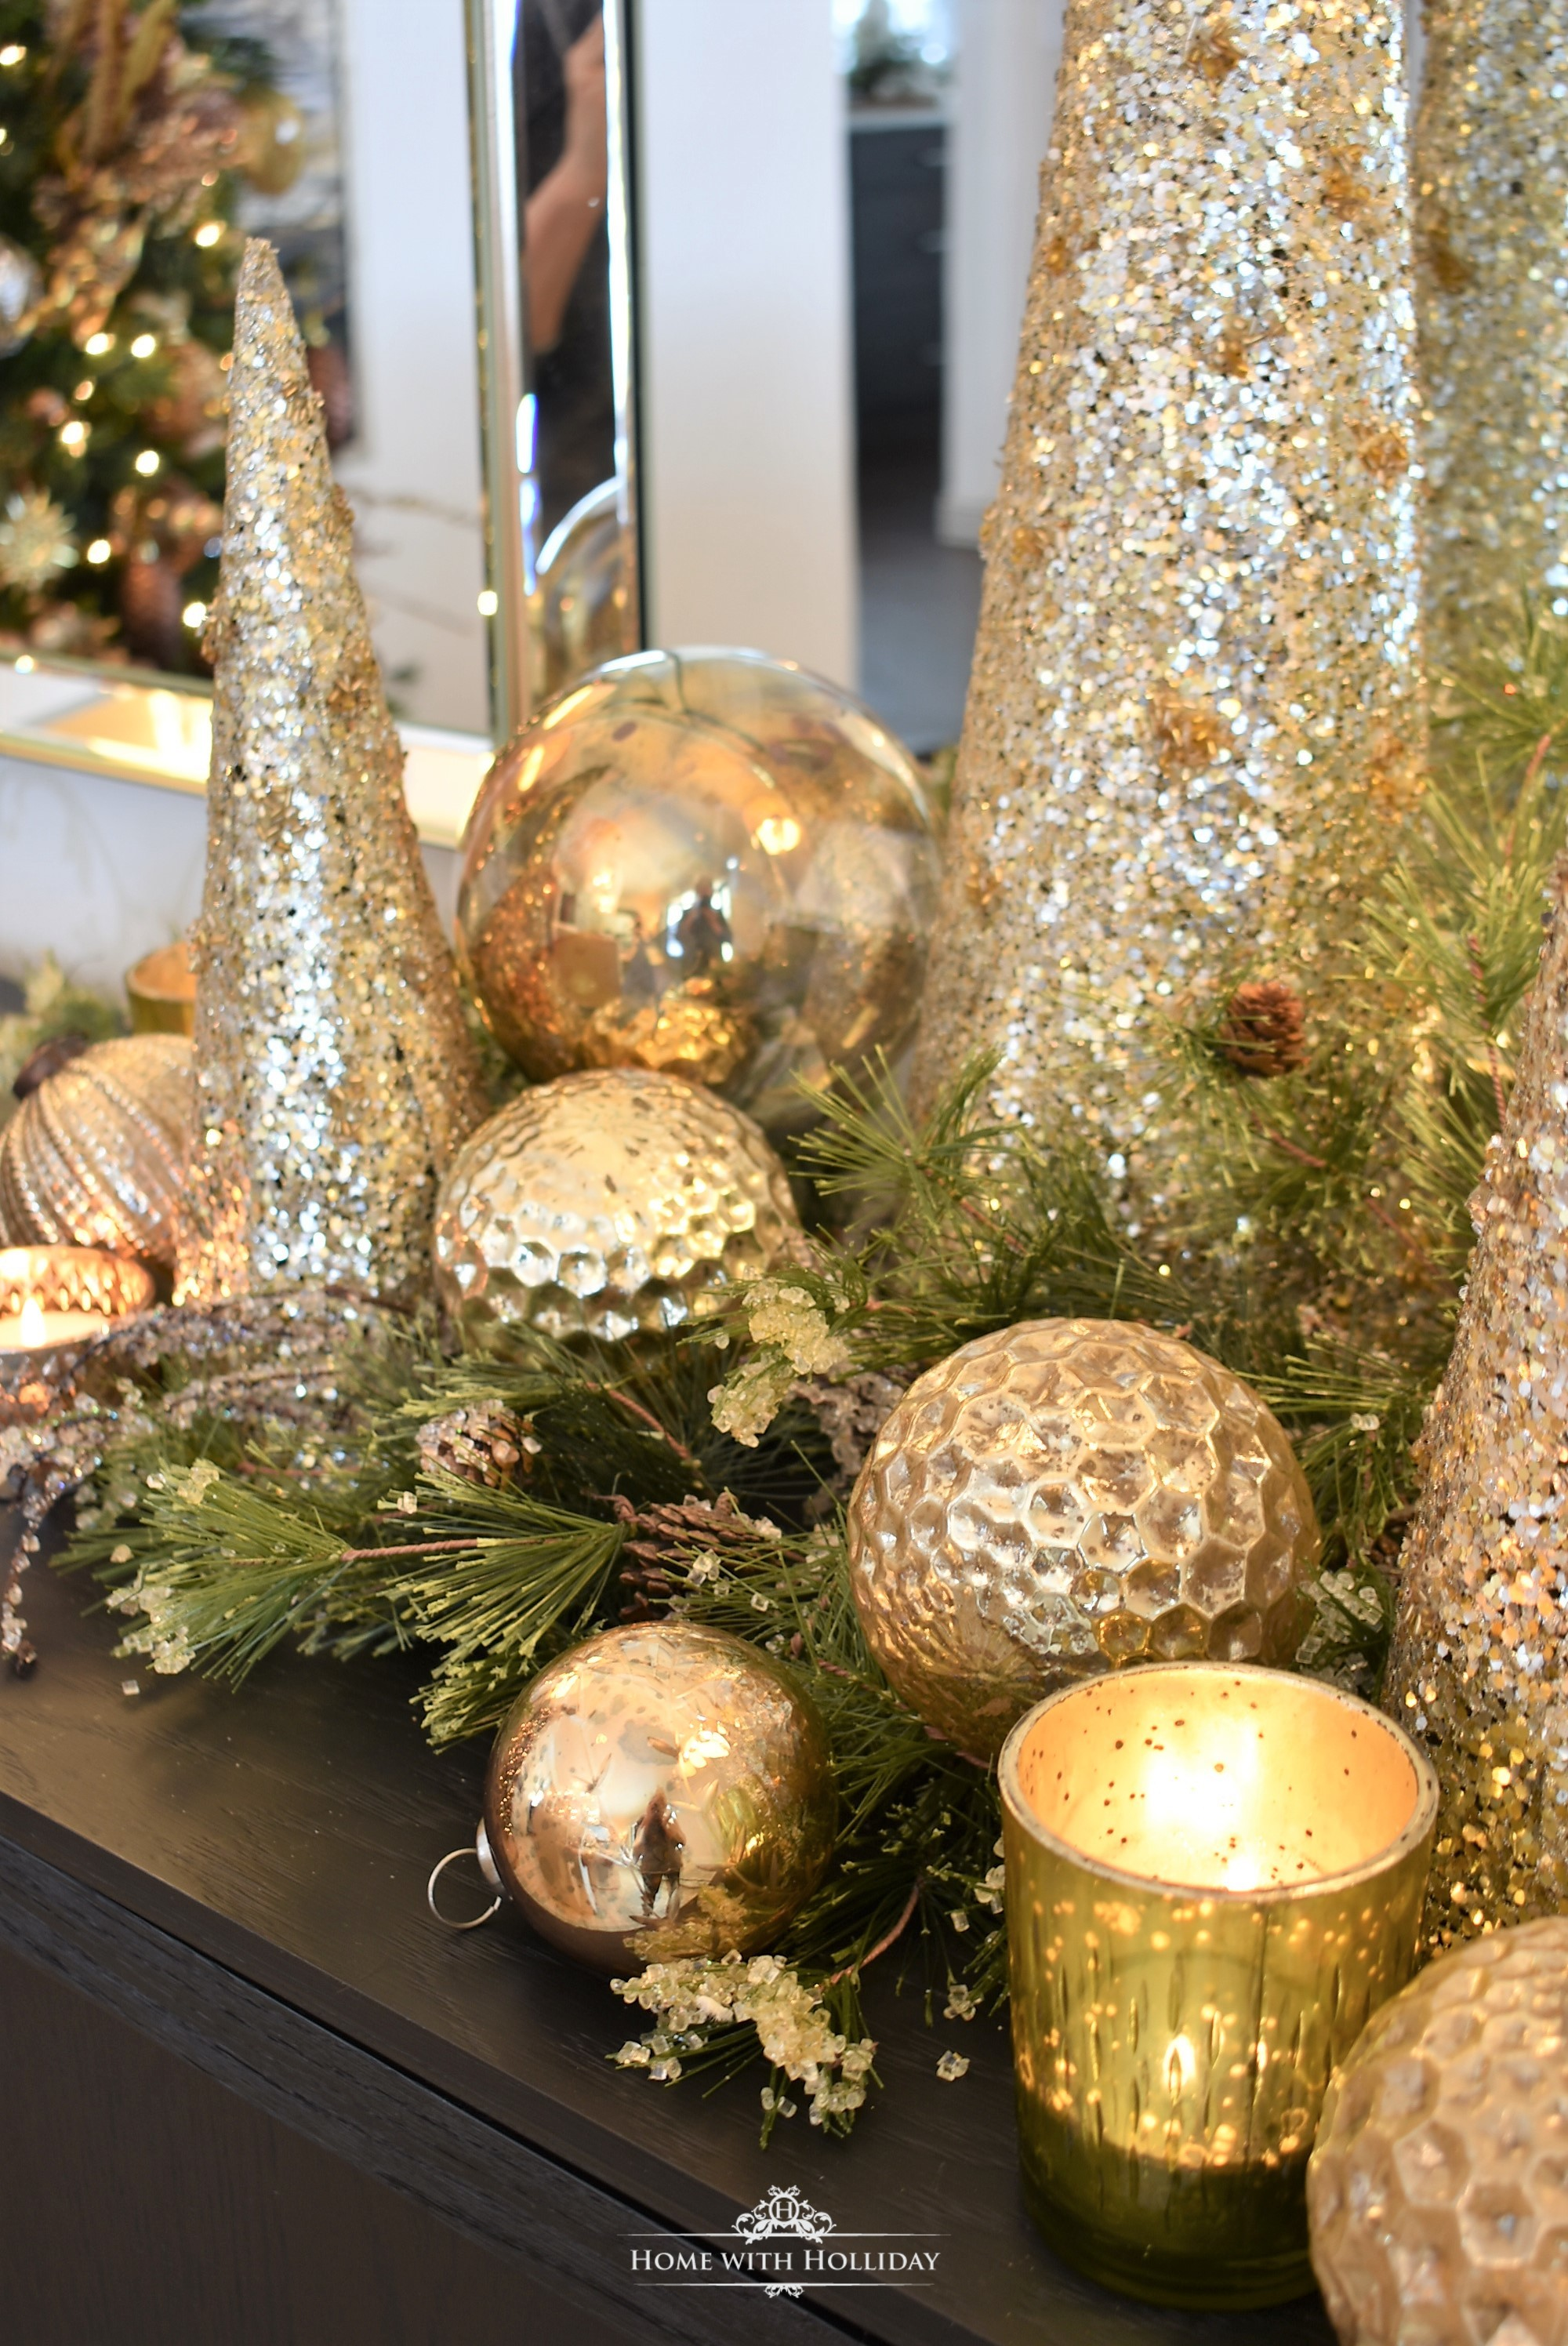 Simple Silver and Gold Glam Christmas Centerpiece with gold ornament balls and votives